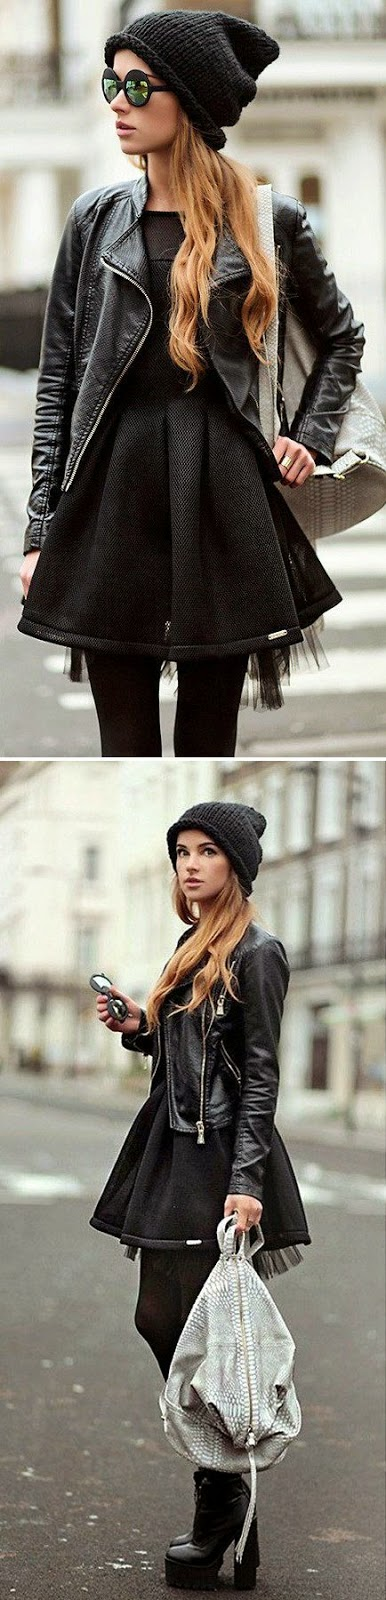 High Fashion For Winter Moto Jacket andBlack Dress